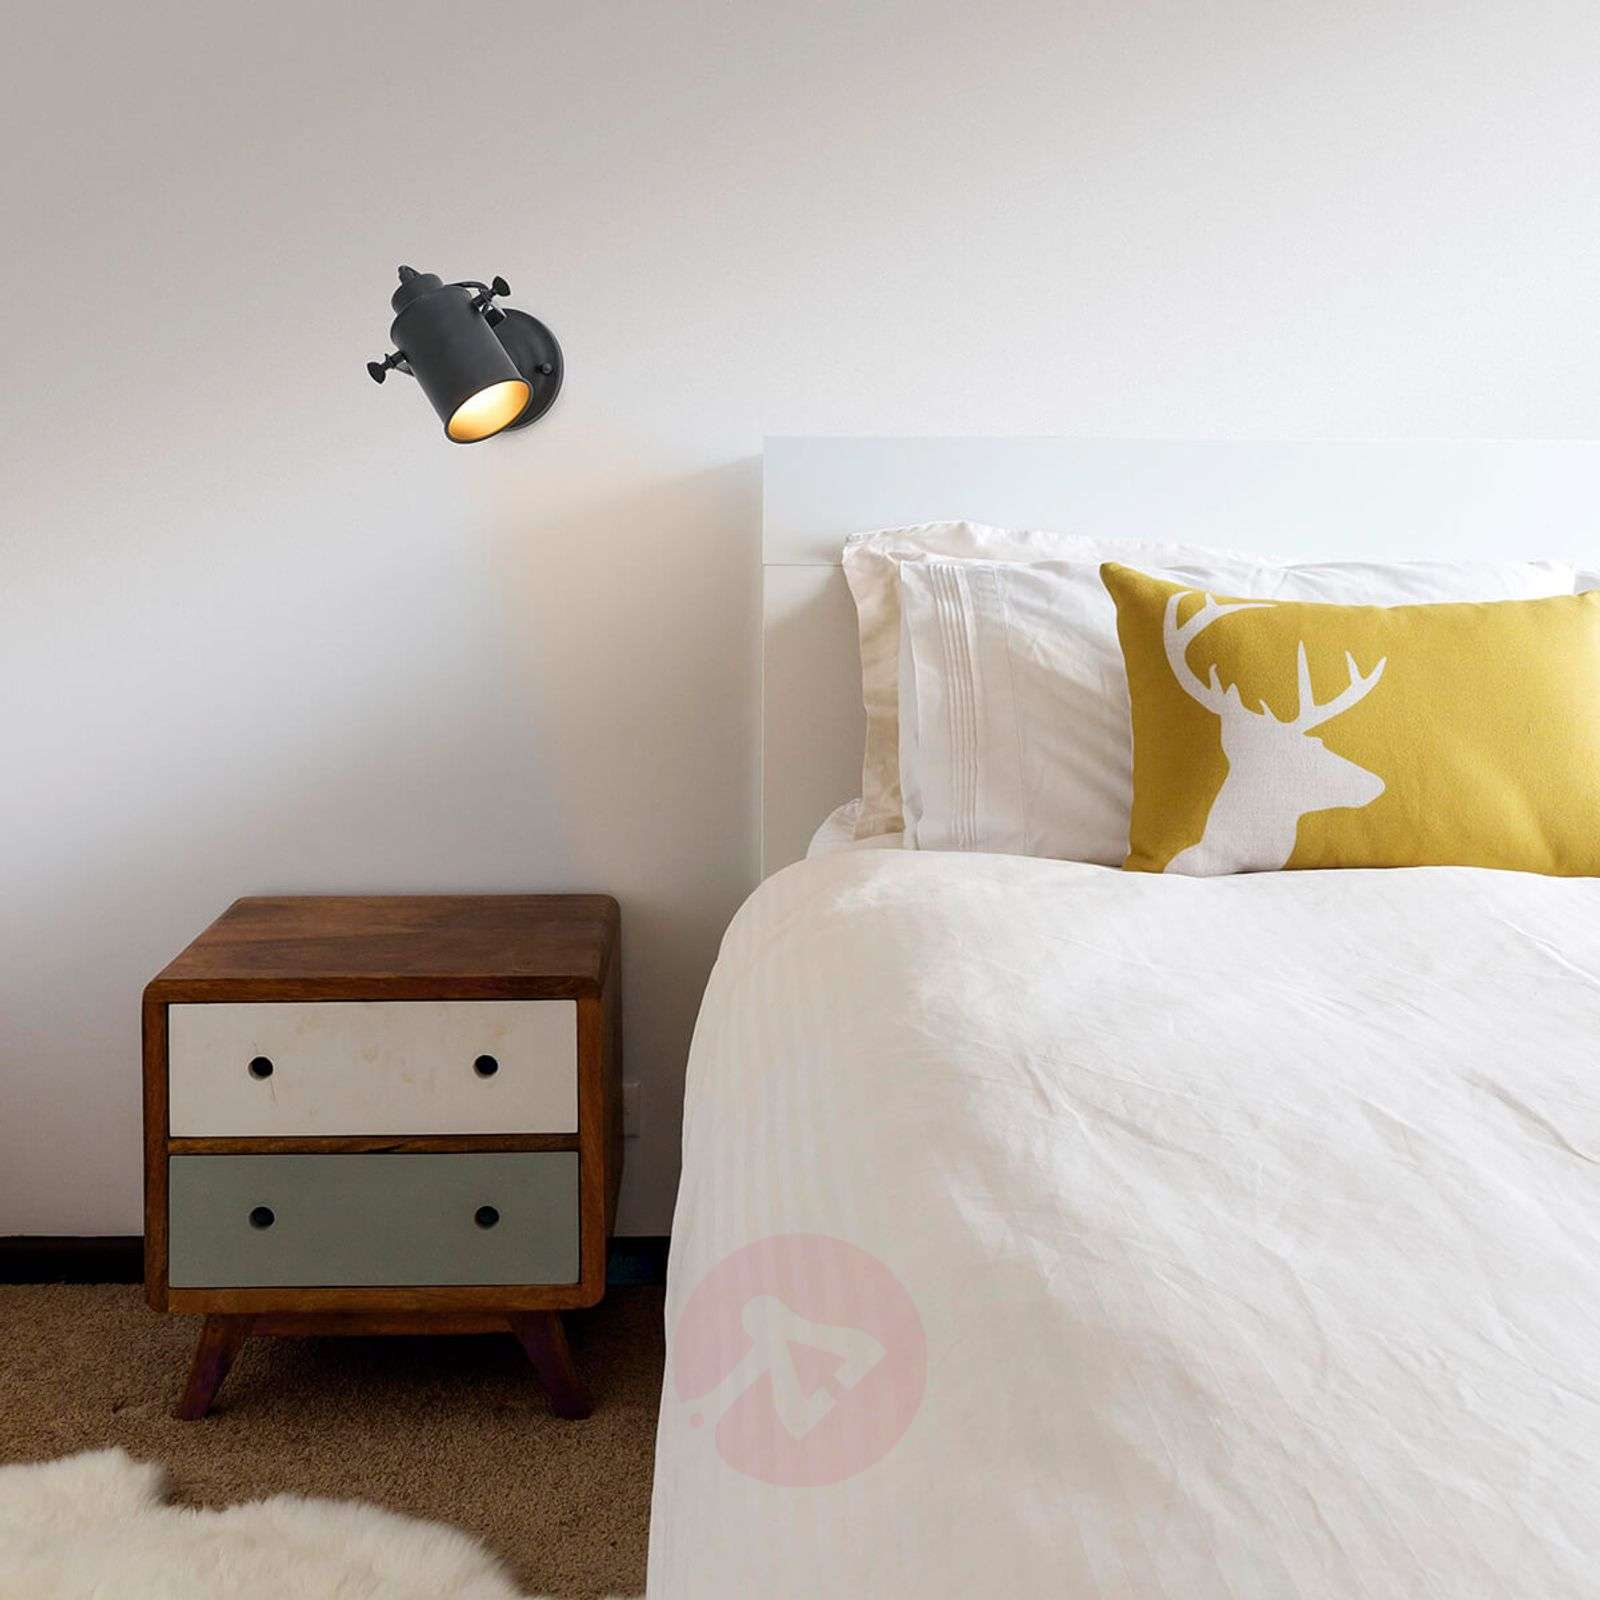 spot mural r tro list 1 lampe. Black Bedroom Furniture Sets. Home Design Ideas